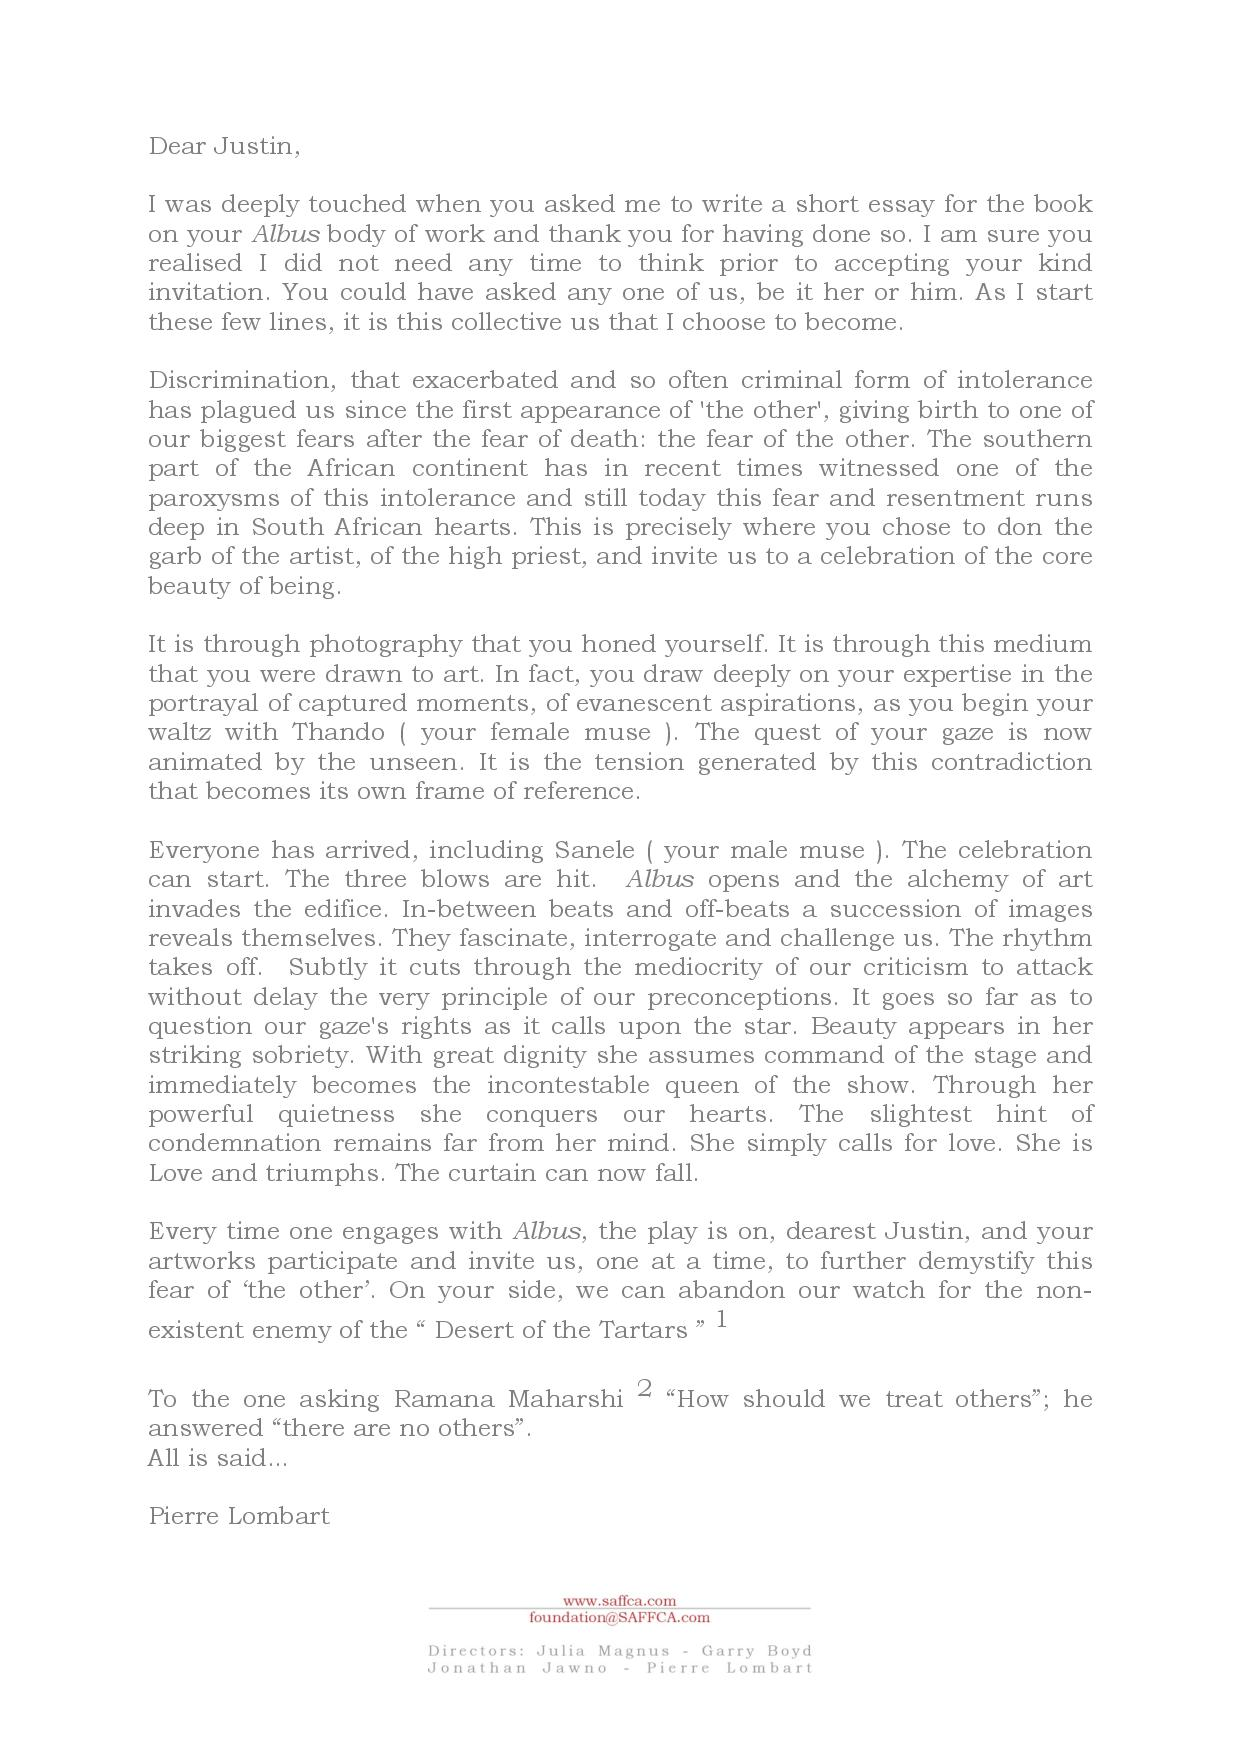 justin-dingwall-short-essay-by-pierre-lombart-for-arbus-final-1-page-002